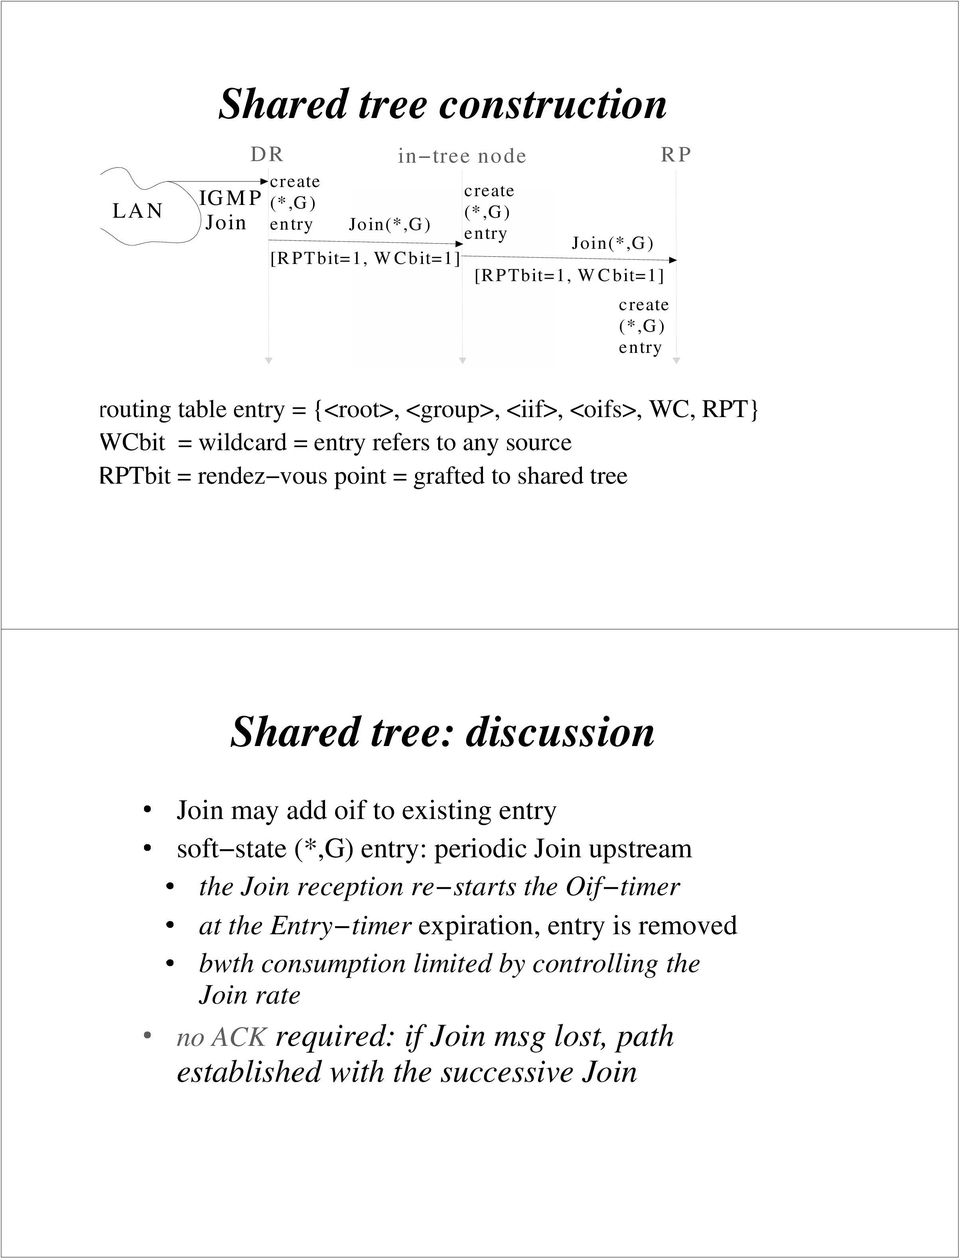 shared tree Shared tree: discussion Join may add oif to existing entry soft state (*,G) entry: periodic Join upstream the Join reception re starts the Oif timer at the